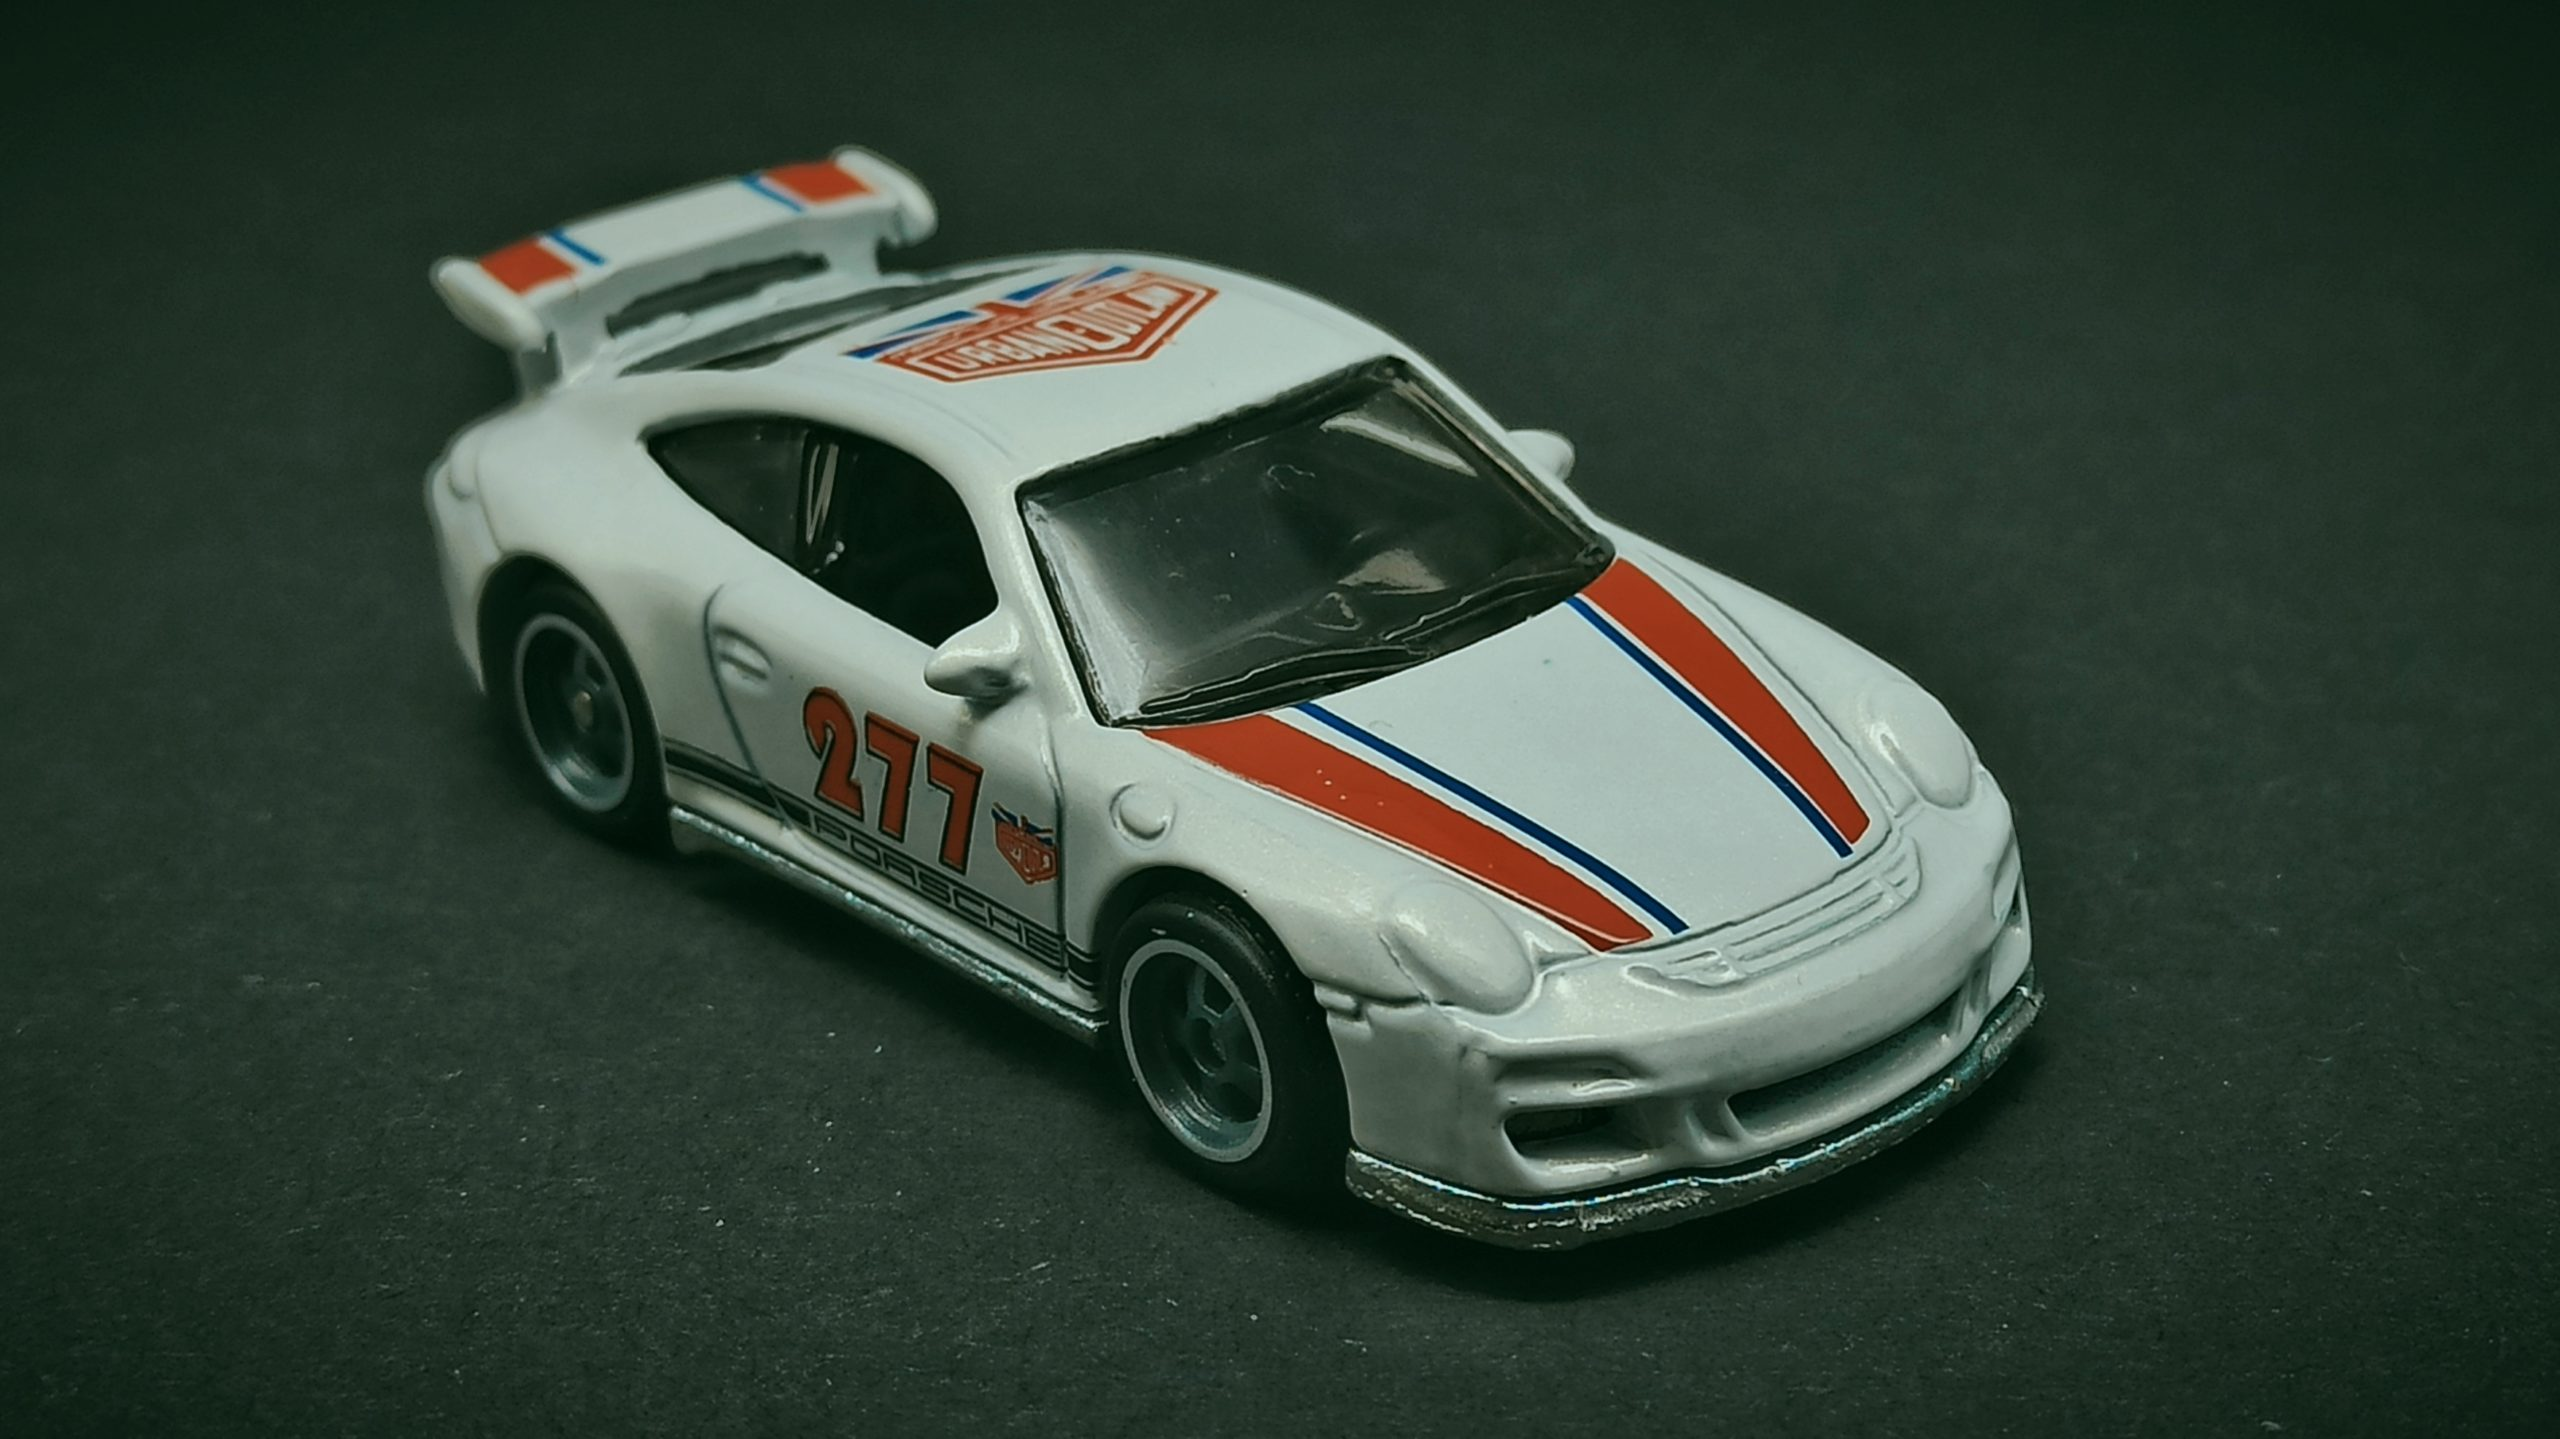 Hot Wheels Porsche 911 GT3 RS (2011 model) (DJF85) 2016 Car Culture: Euro Style (2/5) pearl white Magnus Walker Urban Outlaw front angle